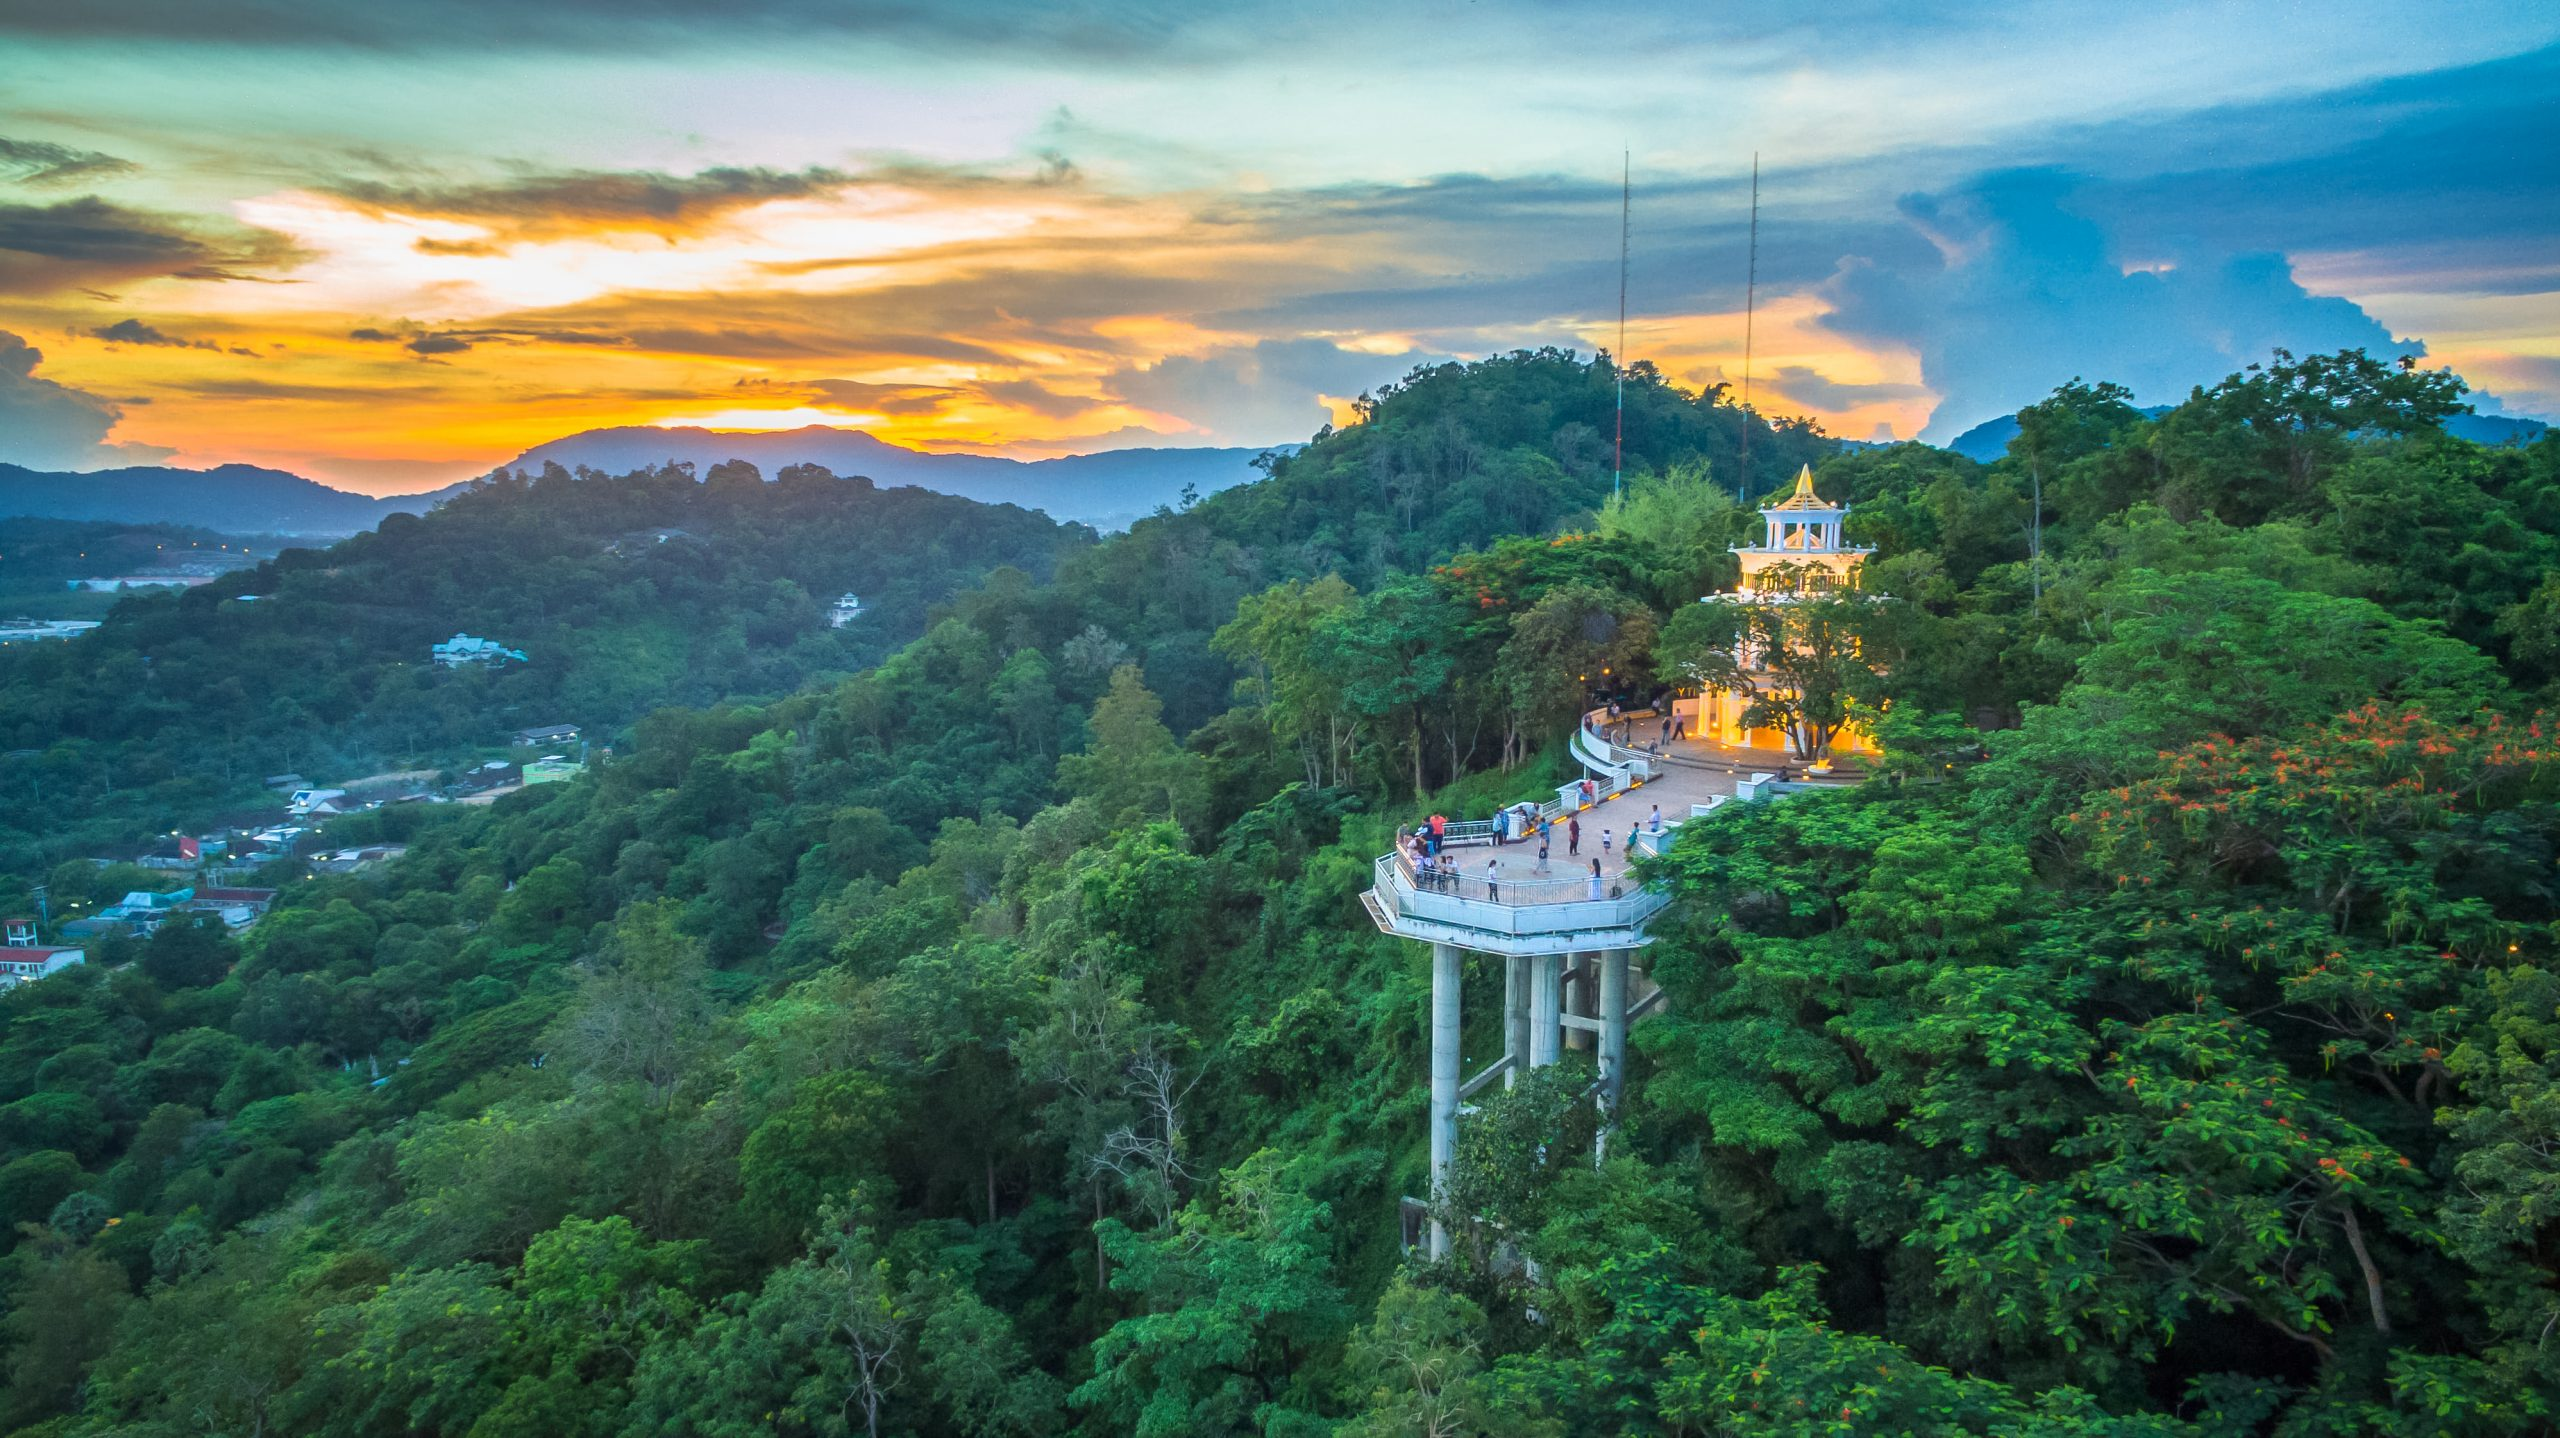 Khao Rang Viewpoint is of the best panorama viewpoint on the top of Rang Hill Phuket Thailand (also called Khao Rang).